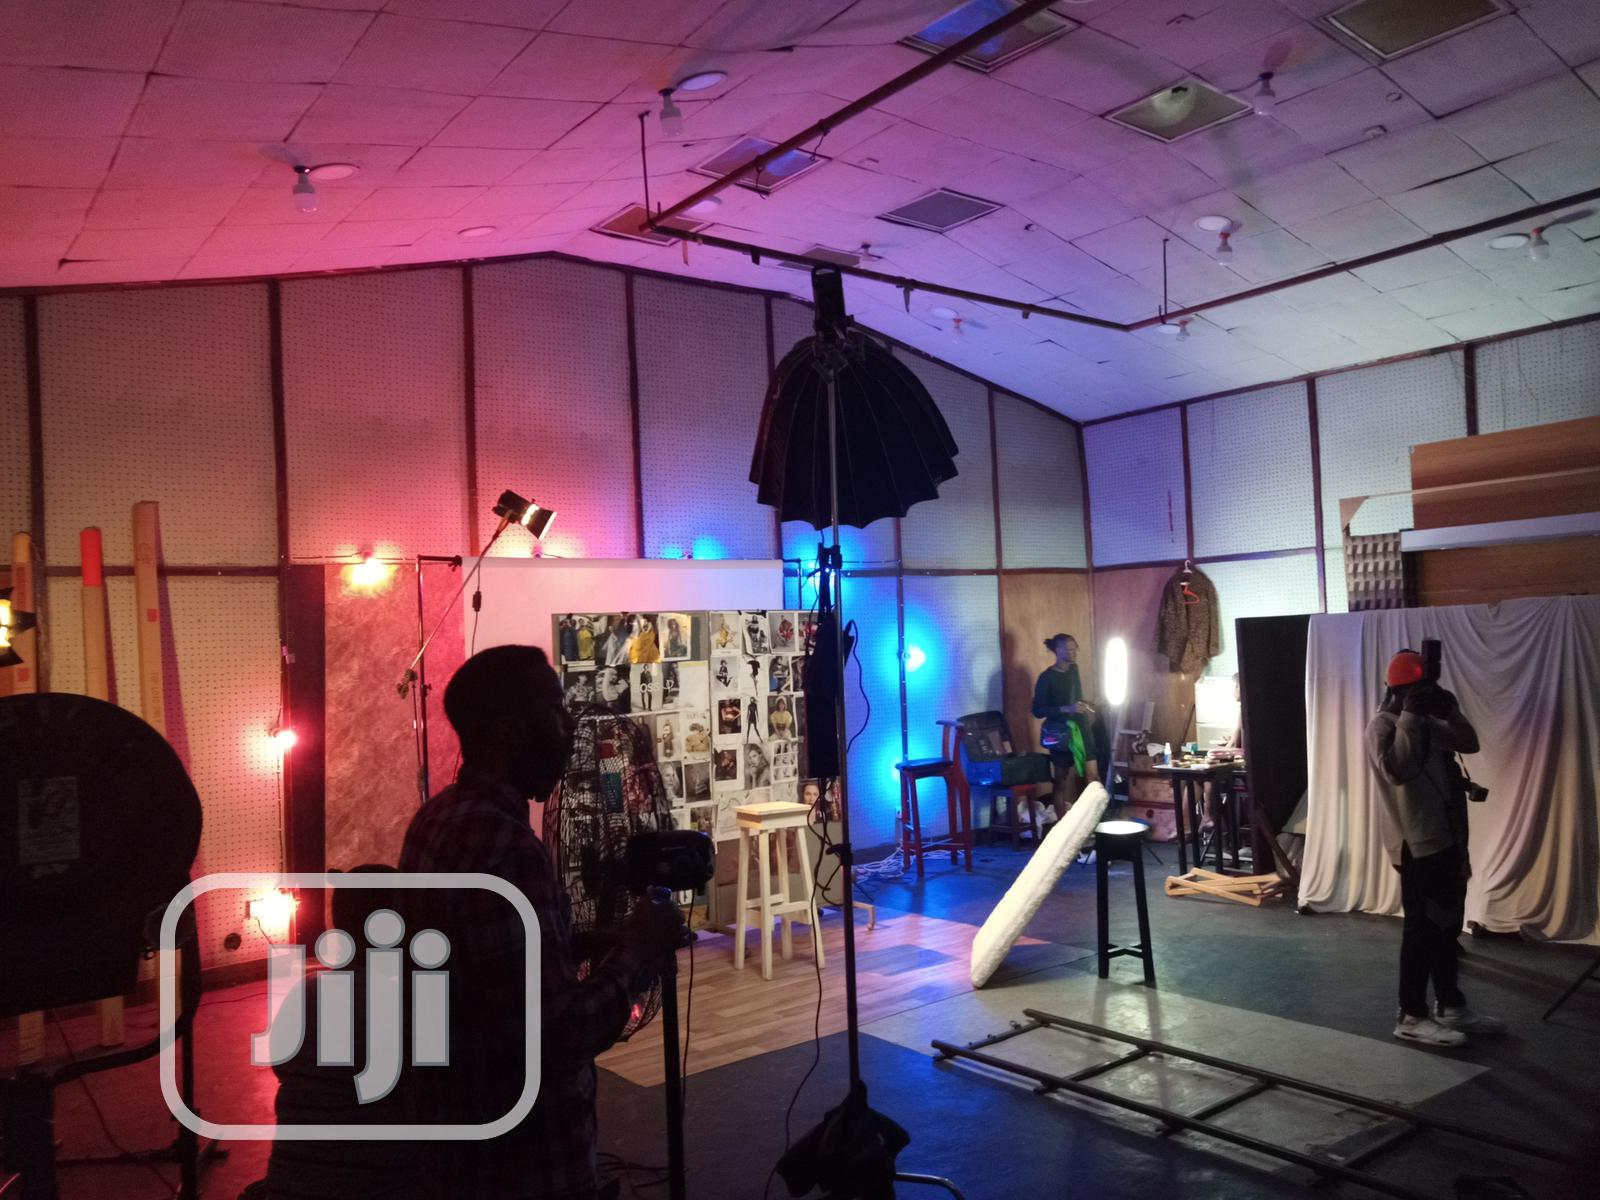 Studio Rental For Video Production And Photo Shoots | Photography & Video Services for sale in Yaba, Lagos State, Nigeria